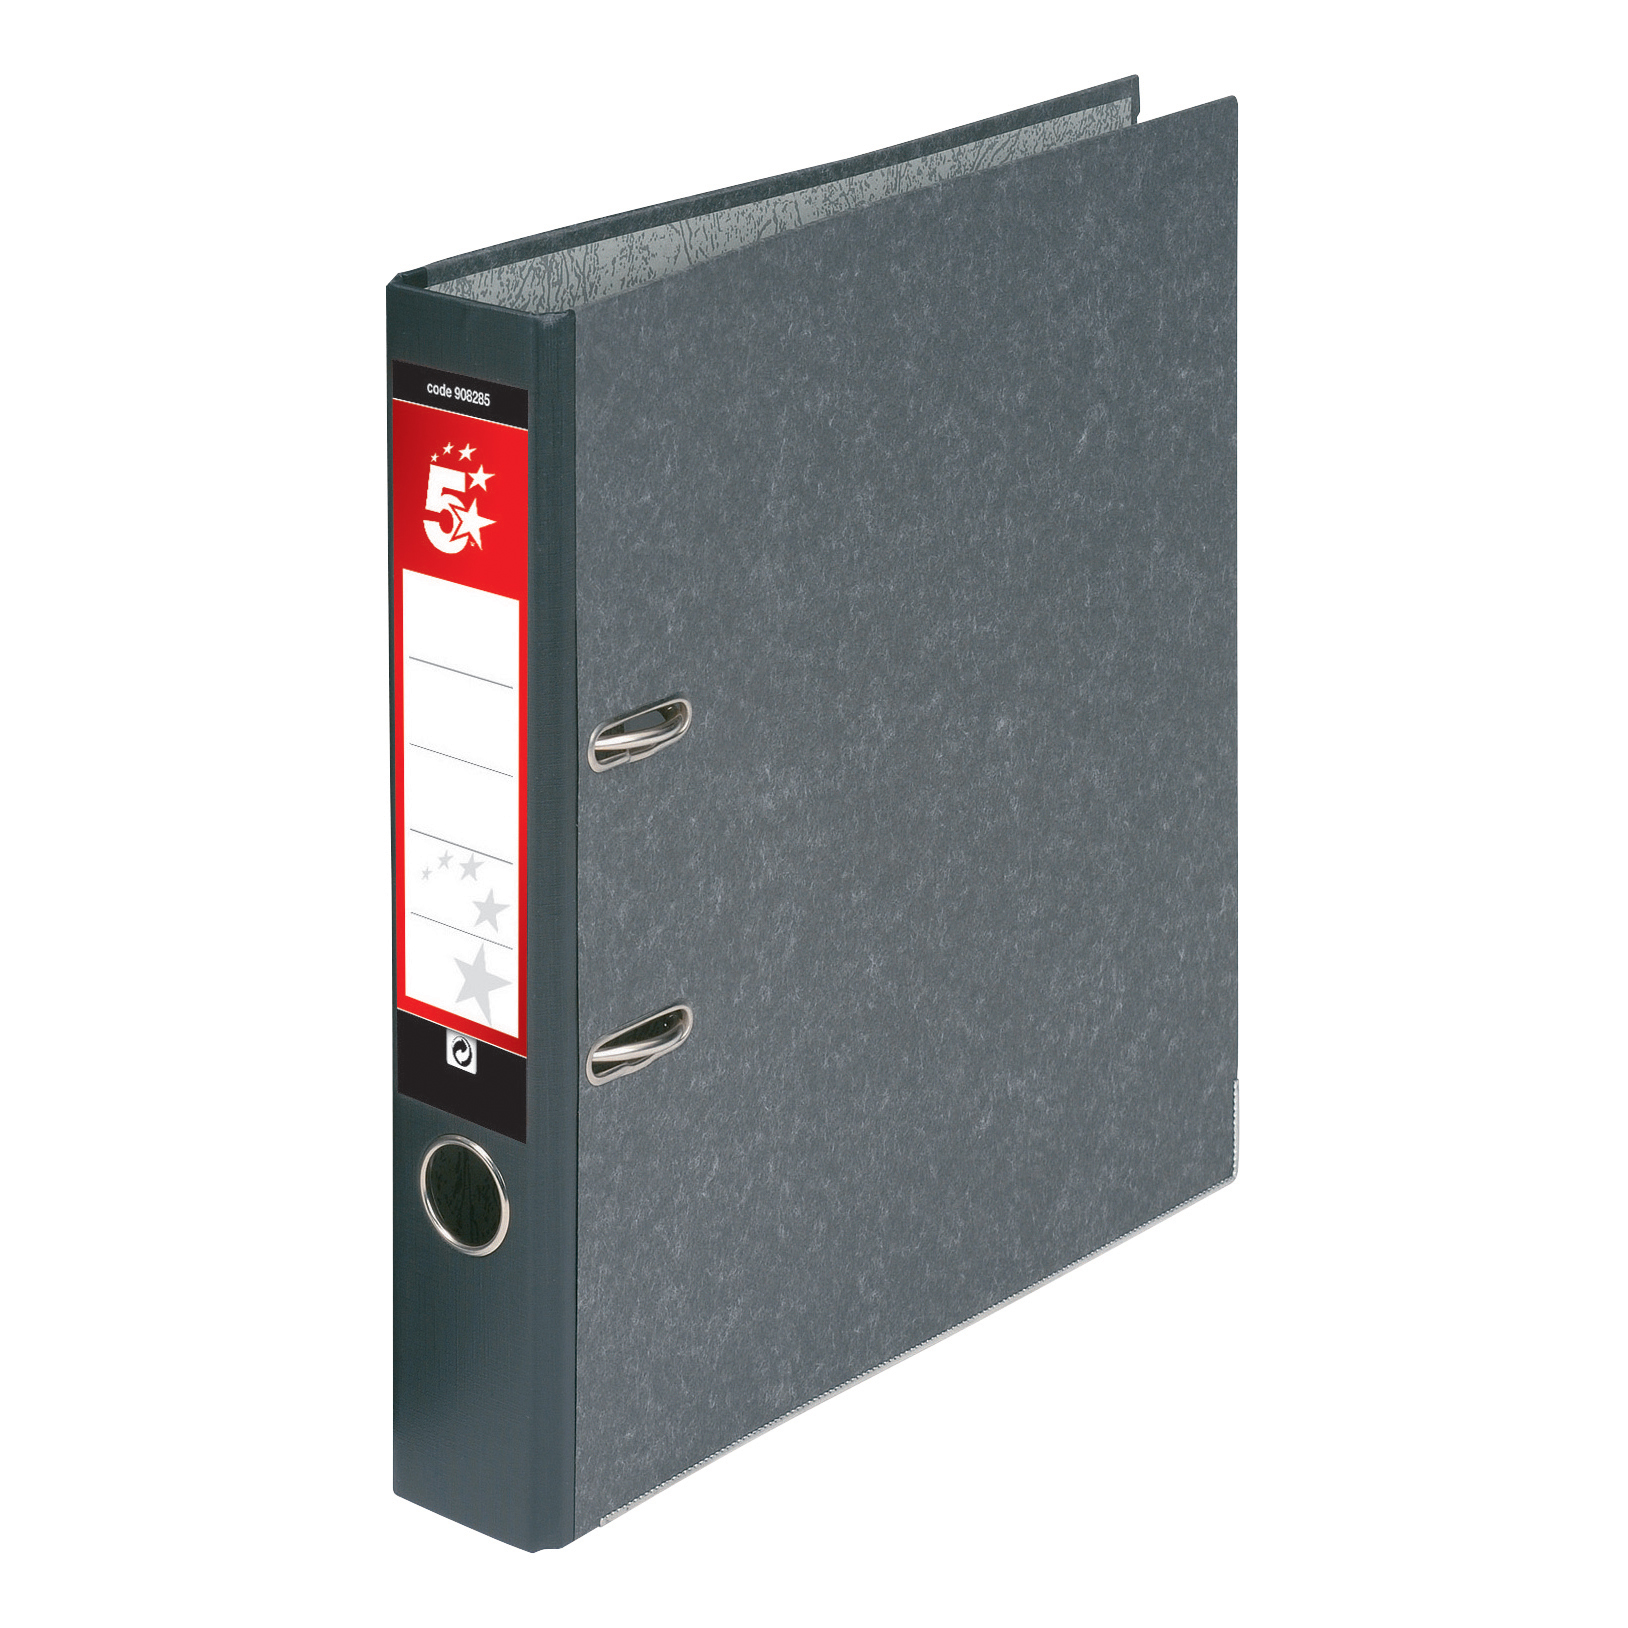 5 Star Office Mini Lever Arch File 50mm Spine Foolscap Cloudy Grey Pack 10